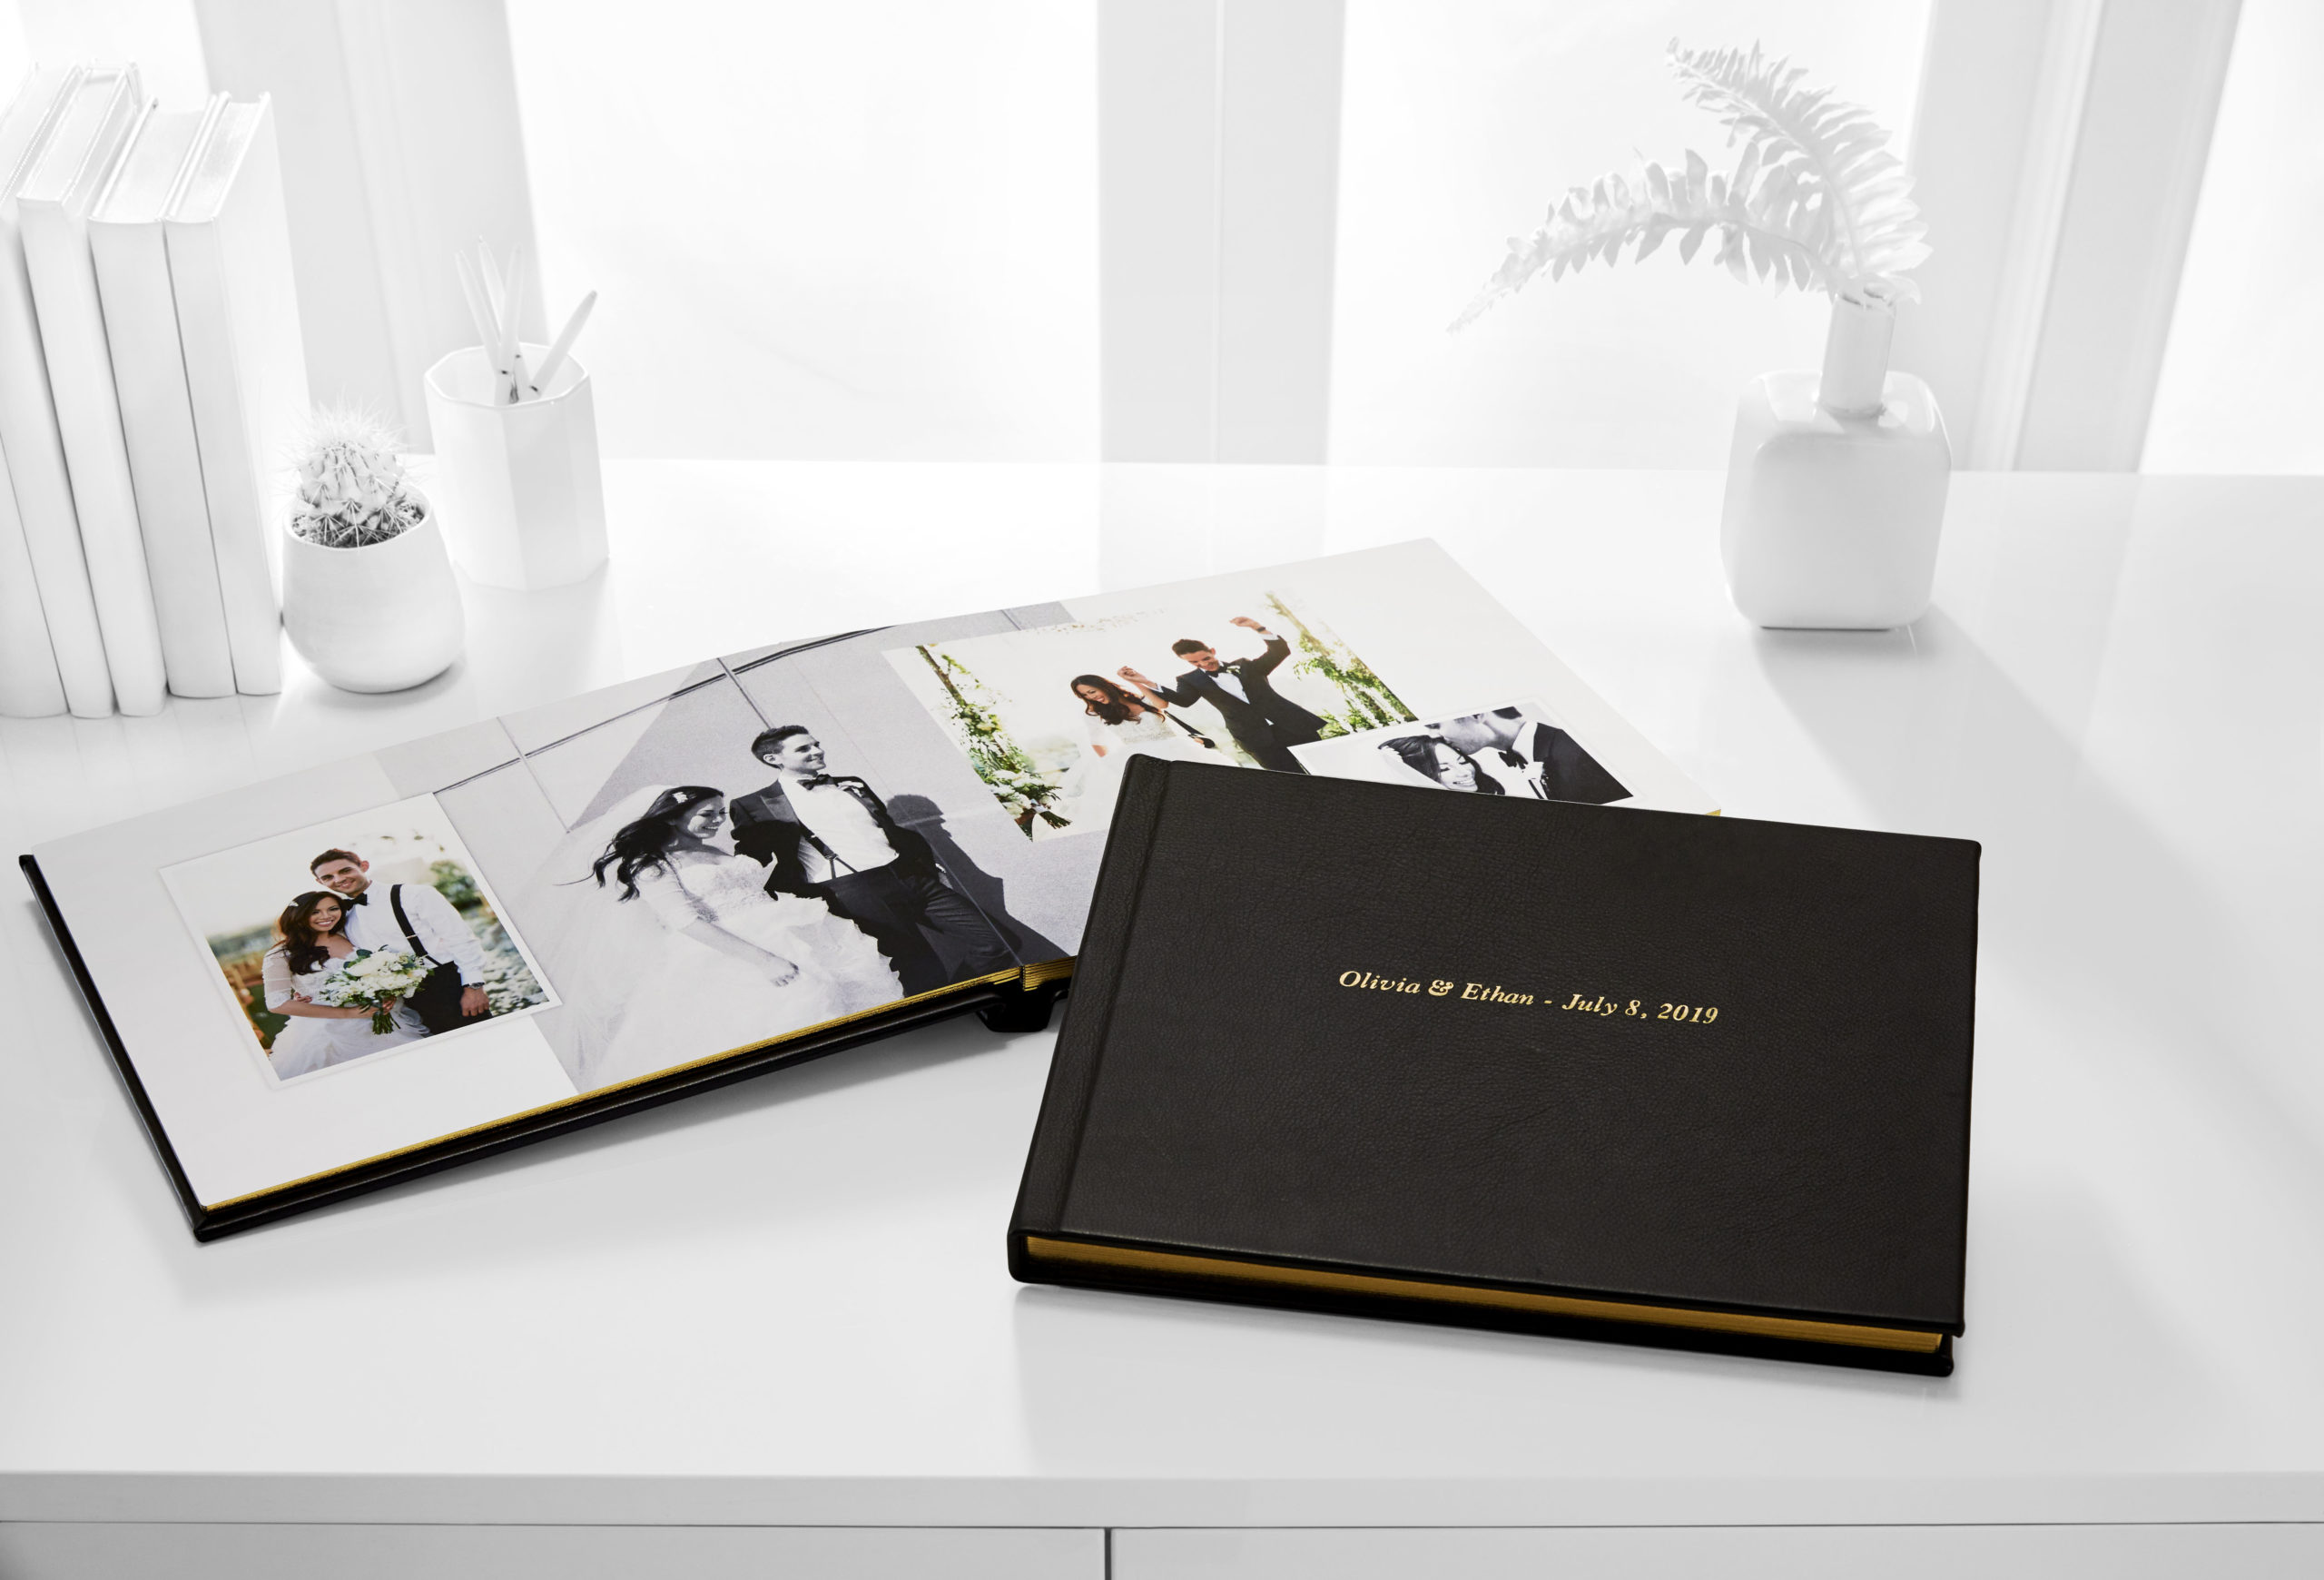 wedding photo book with pictures of the bride and groom on their wedding day